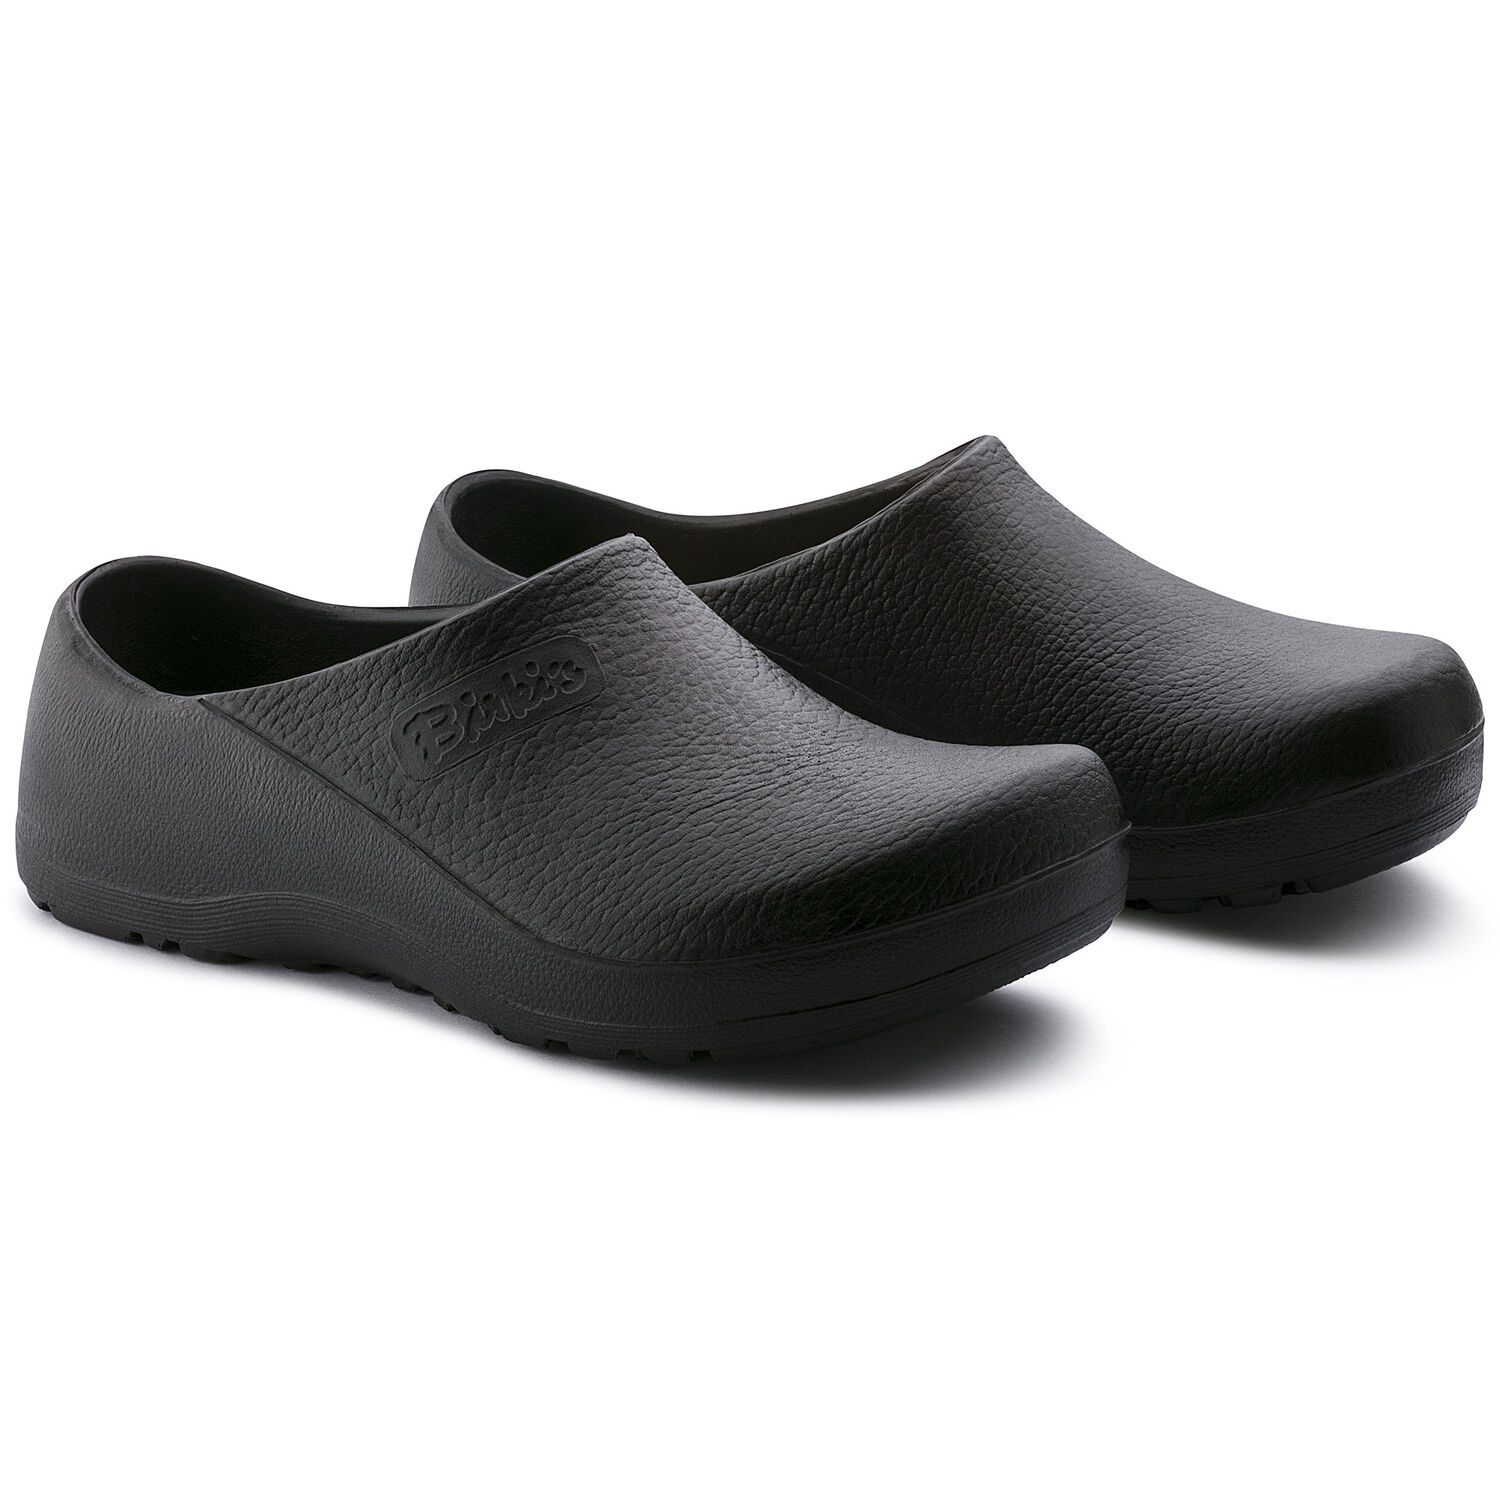 Birkenstock Profi Super Birki Regular